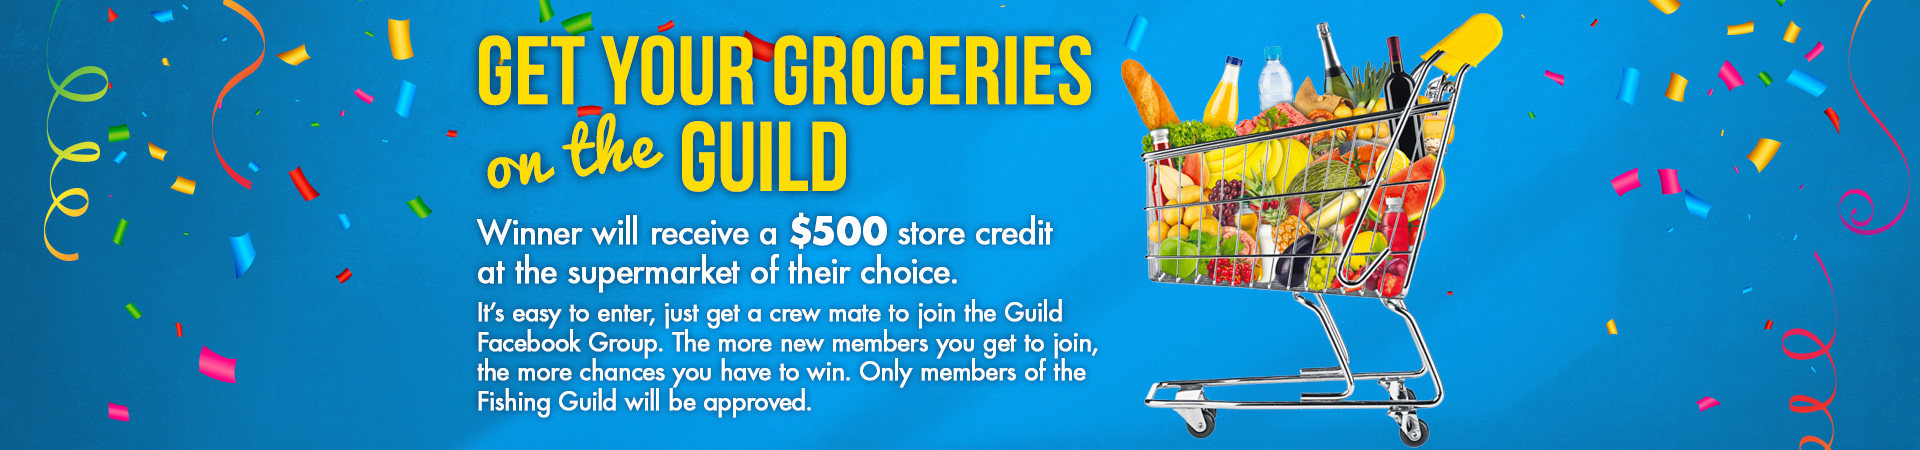 NZFIG-J002881-Get-Groceries-Website-Banner-v1-2